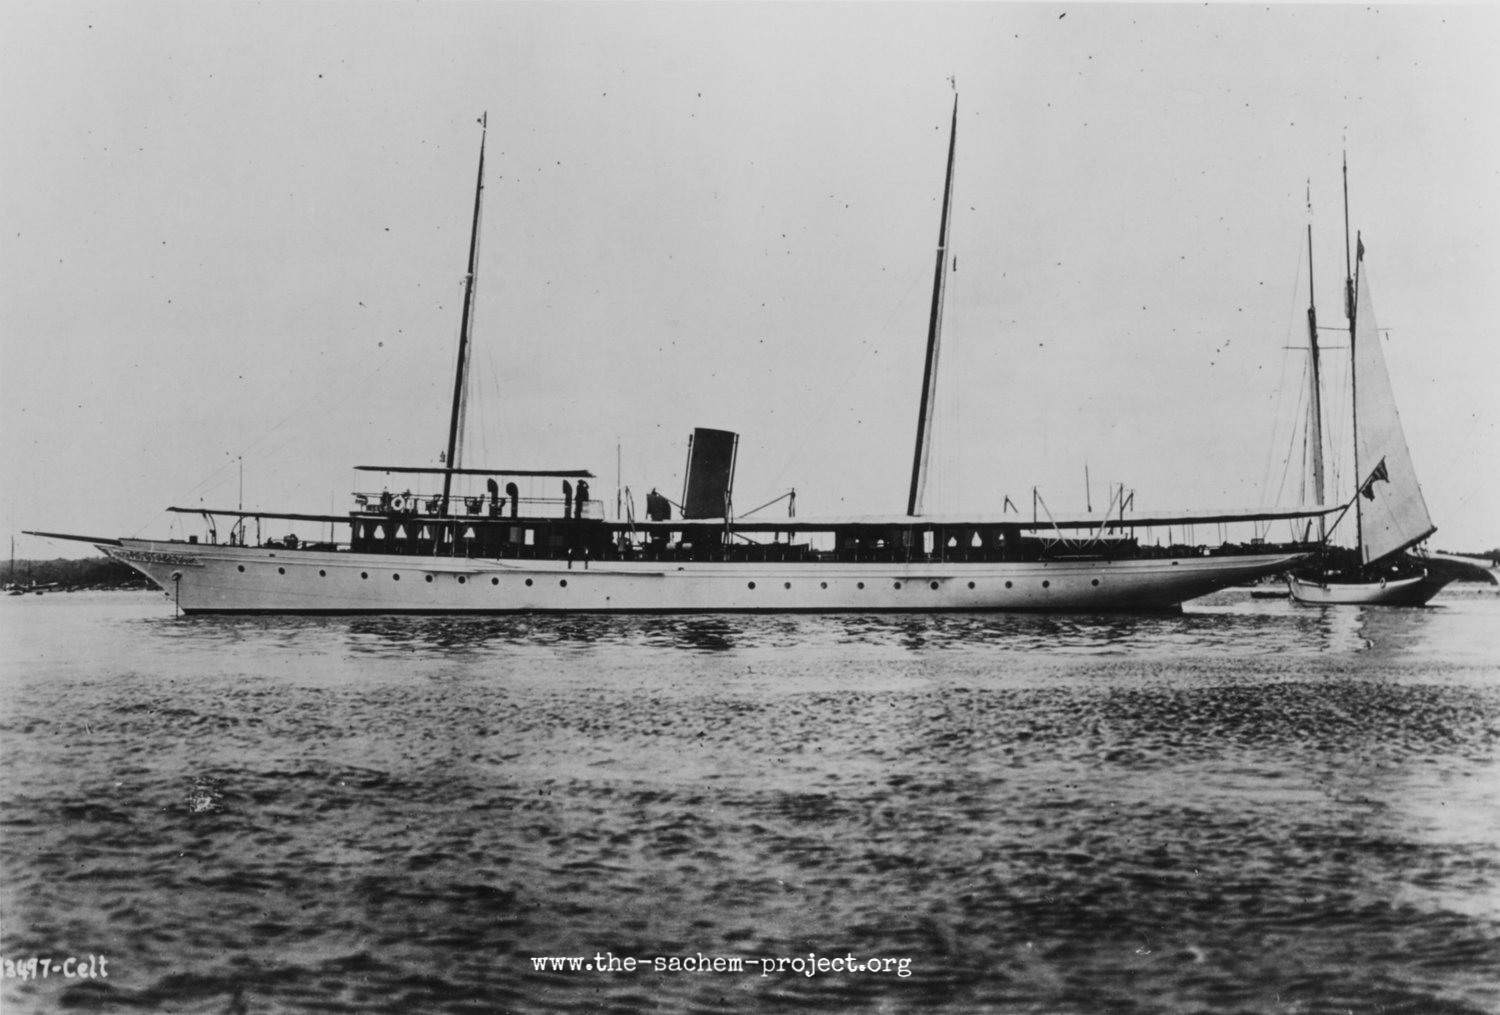 PHOTO NH 102169 FROM U.S. NAVAL HISTORICAL CENTER.